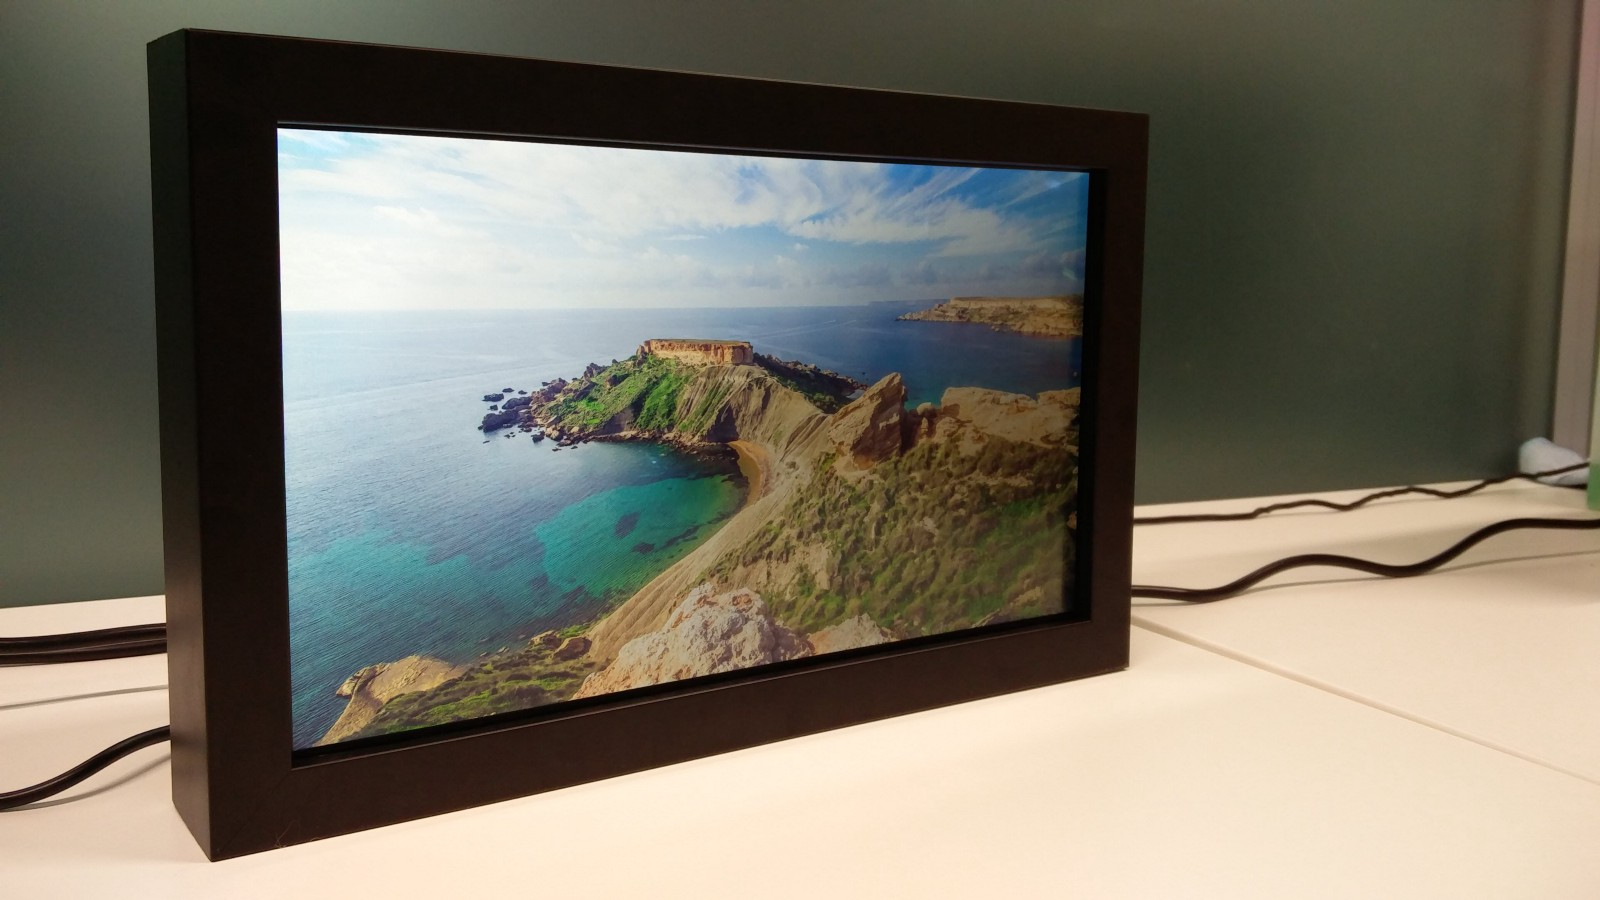 High-End Digital Picture Frame Makes a Great Christmas Gift